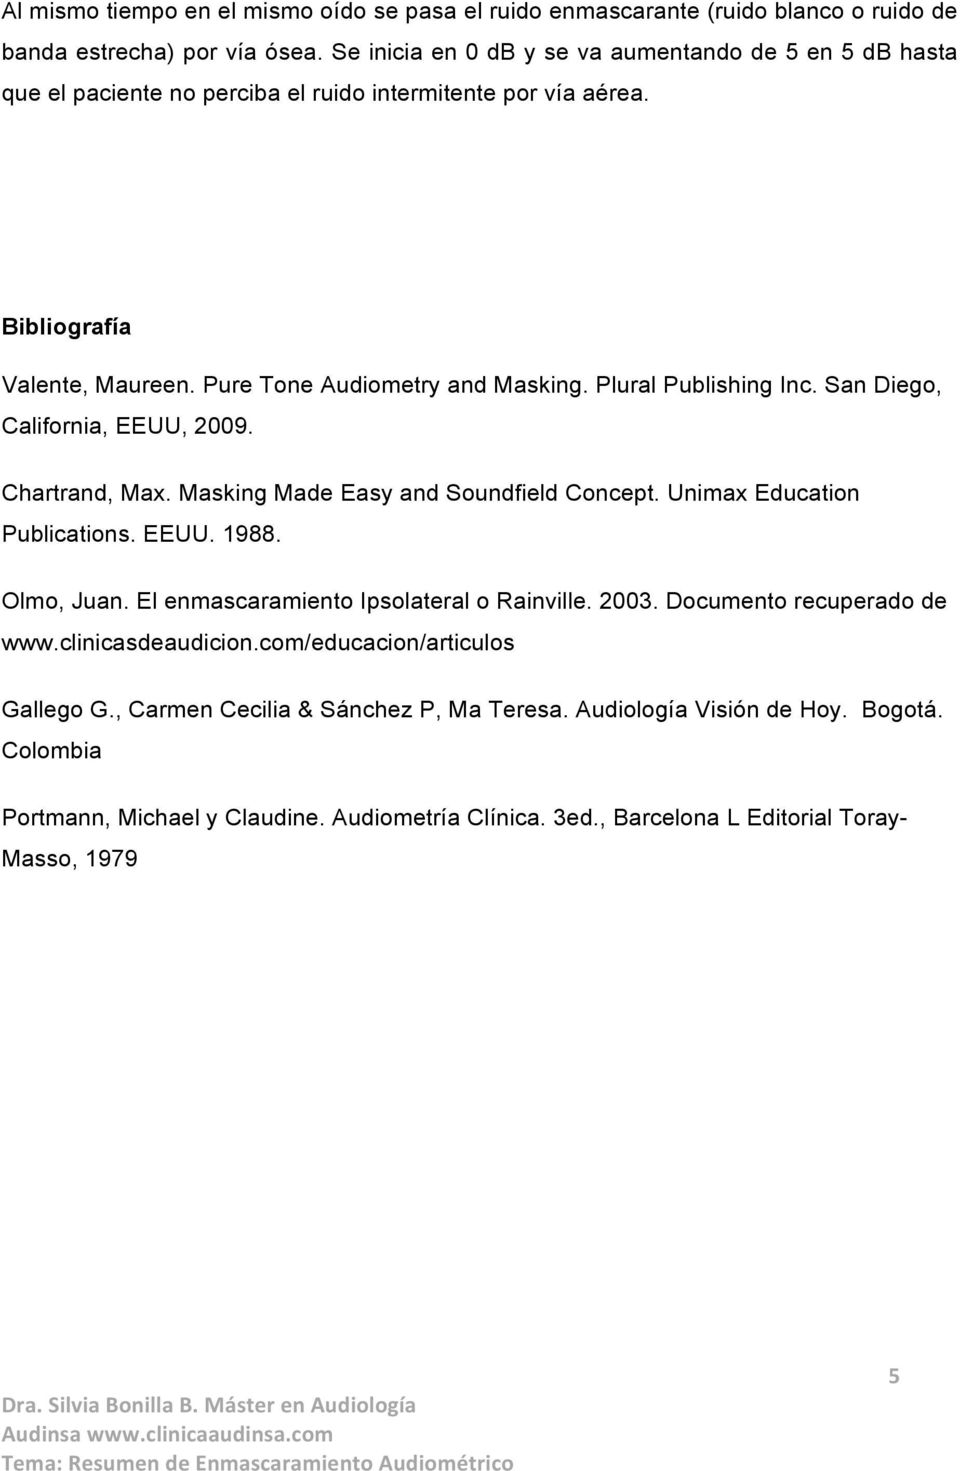 Plural Publishing Inc. San Diego, California, EEUU, 2009. Chartrand, Max. Masking Made Easy and Soundfield Concept. Unimax Education Publications. EEUU. 1988. Olmo, Juan.